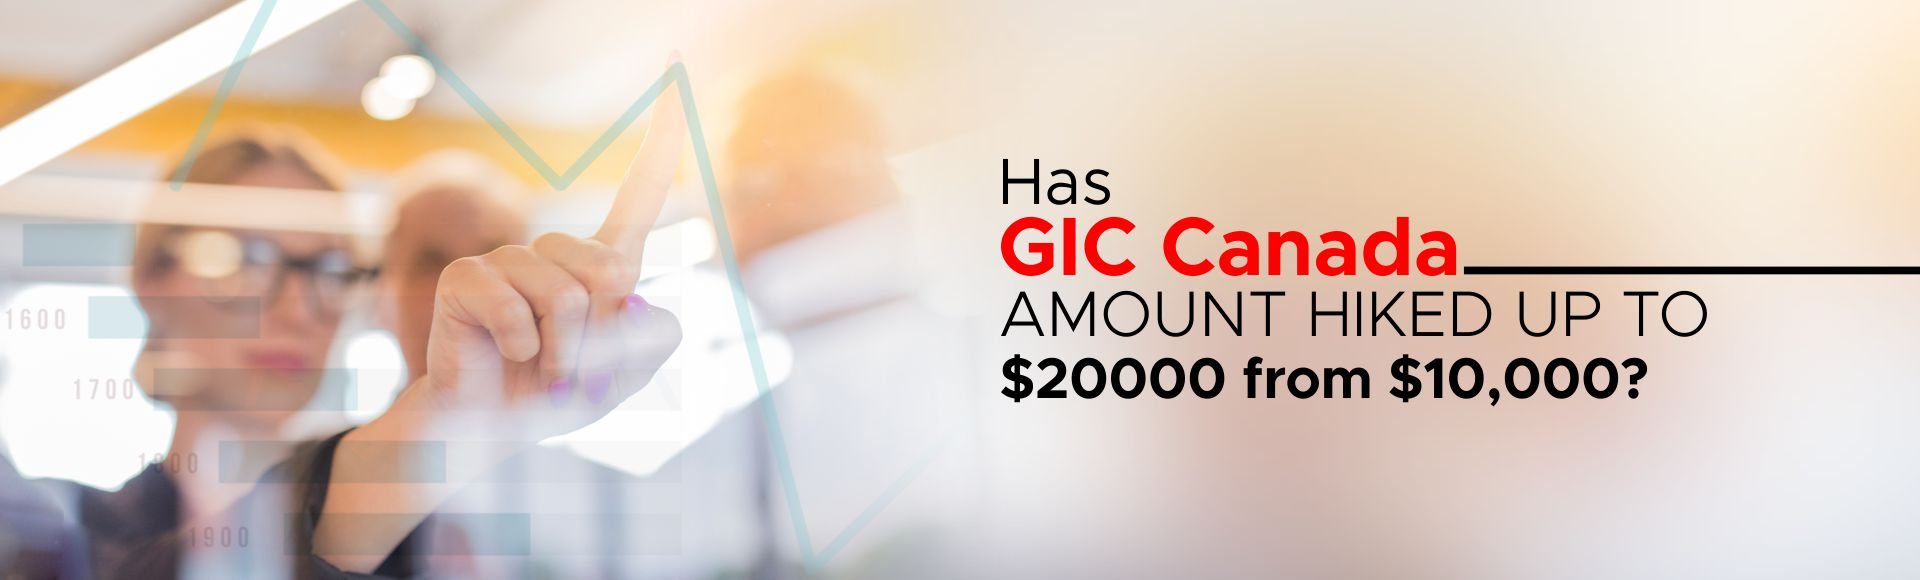 Has GIC Canada amount hiked up to $20000 from $10,000?